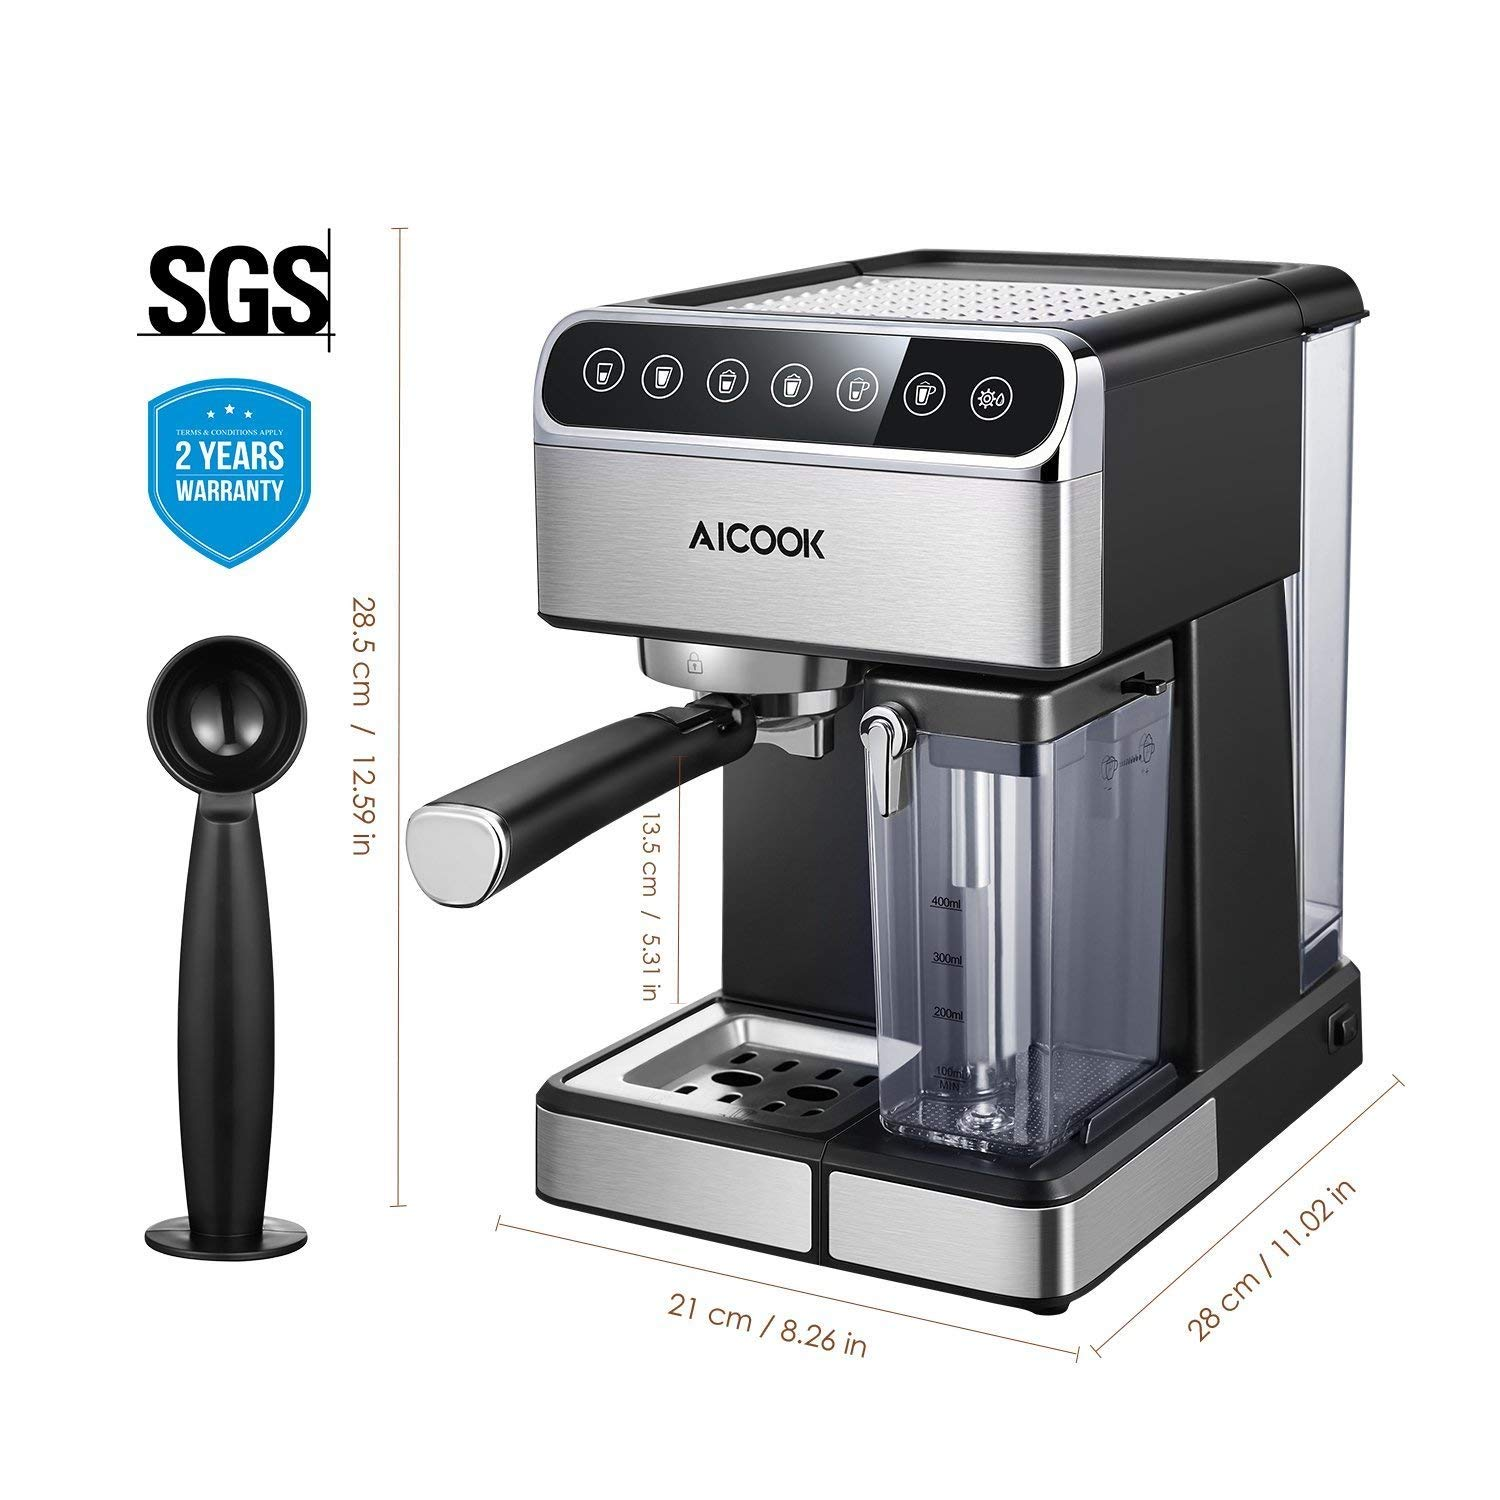 Aicook Espresso Machine, Barista Espresso Coffee Maker with One Touch Digital Screen, 15 Bar Pump and Automatic Milk Frother, Cappuccino Maker, Latte maker by AICOOK (Image #6)